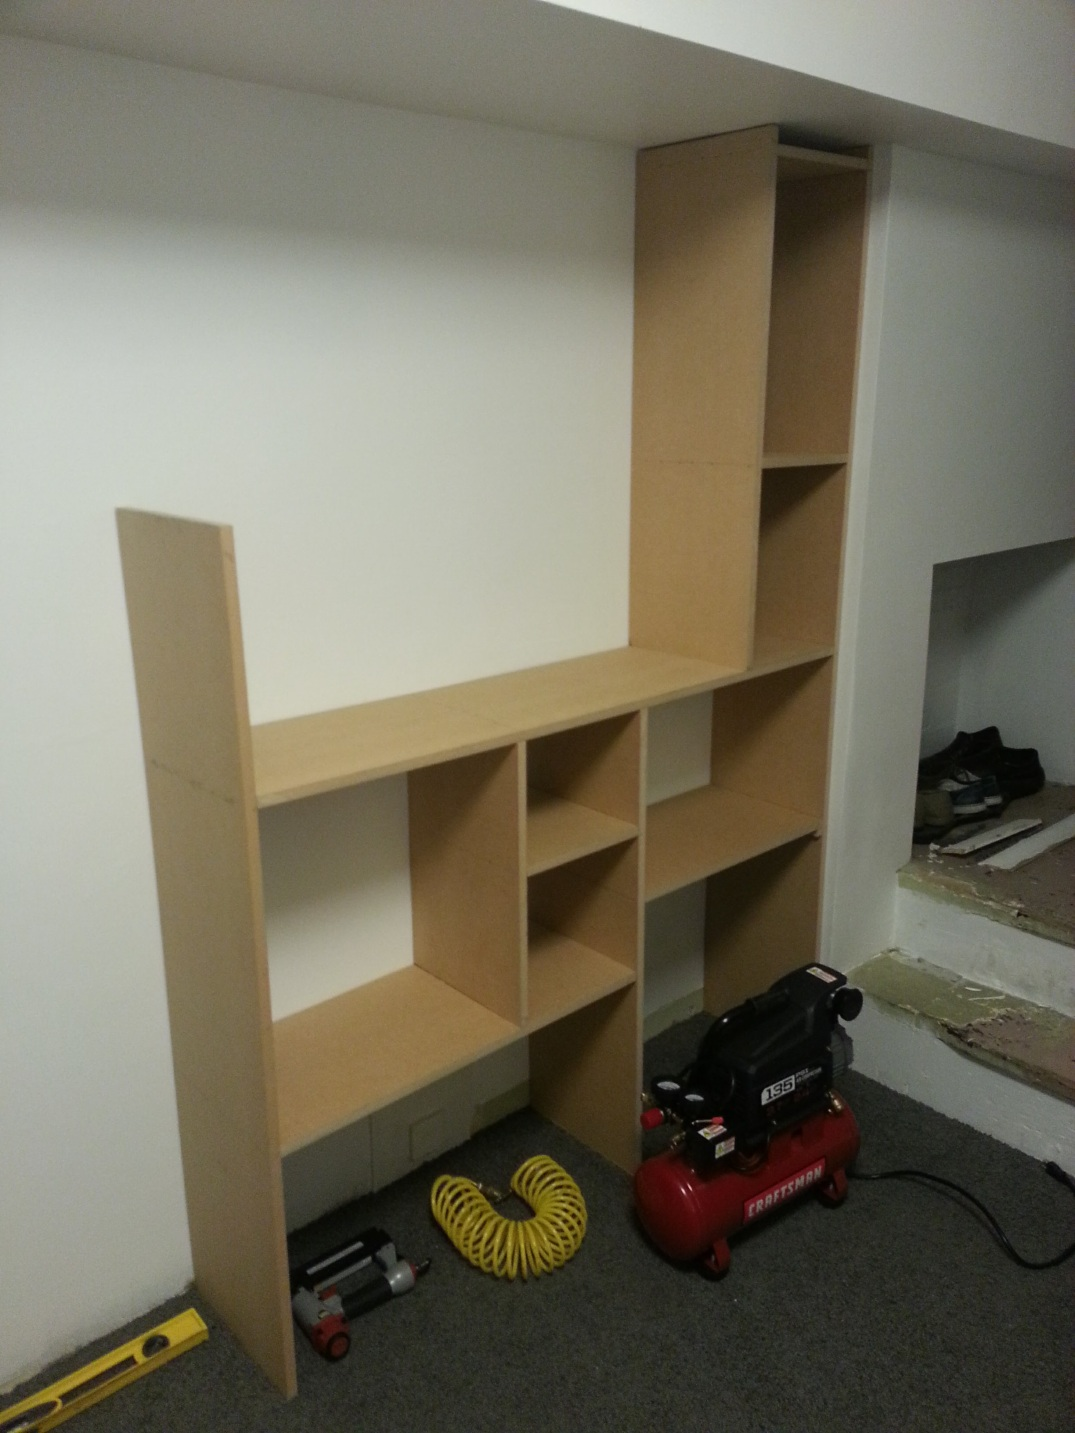 Cubic built-in cabinets - assembly